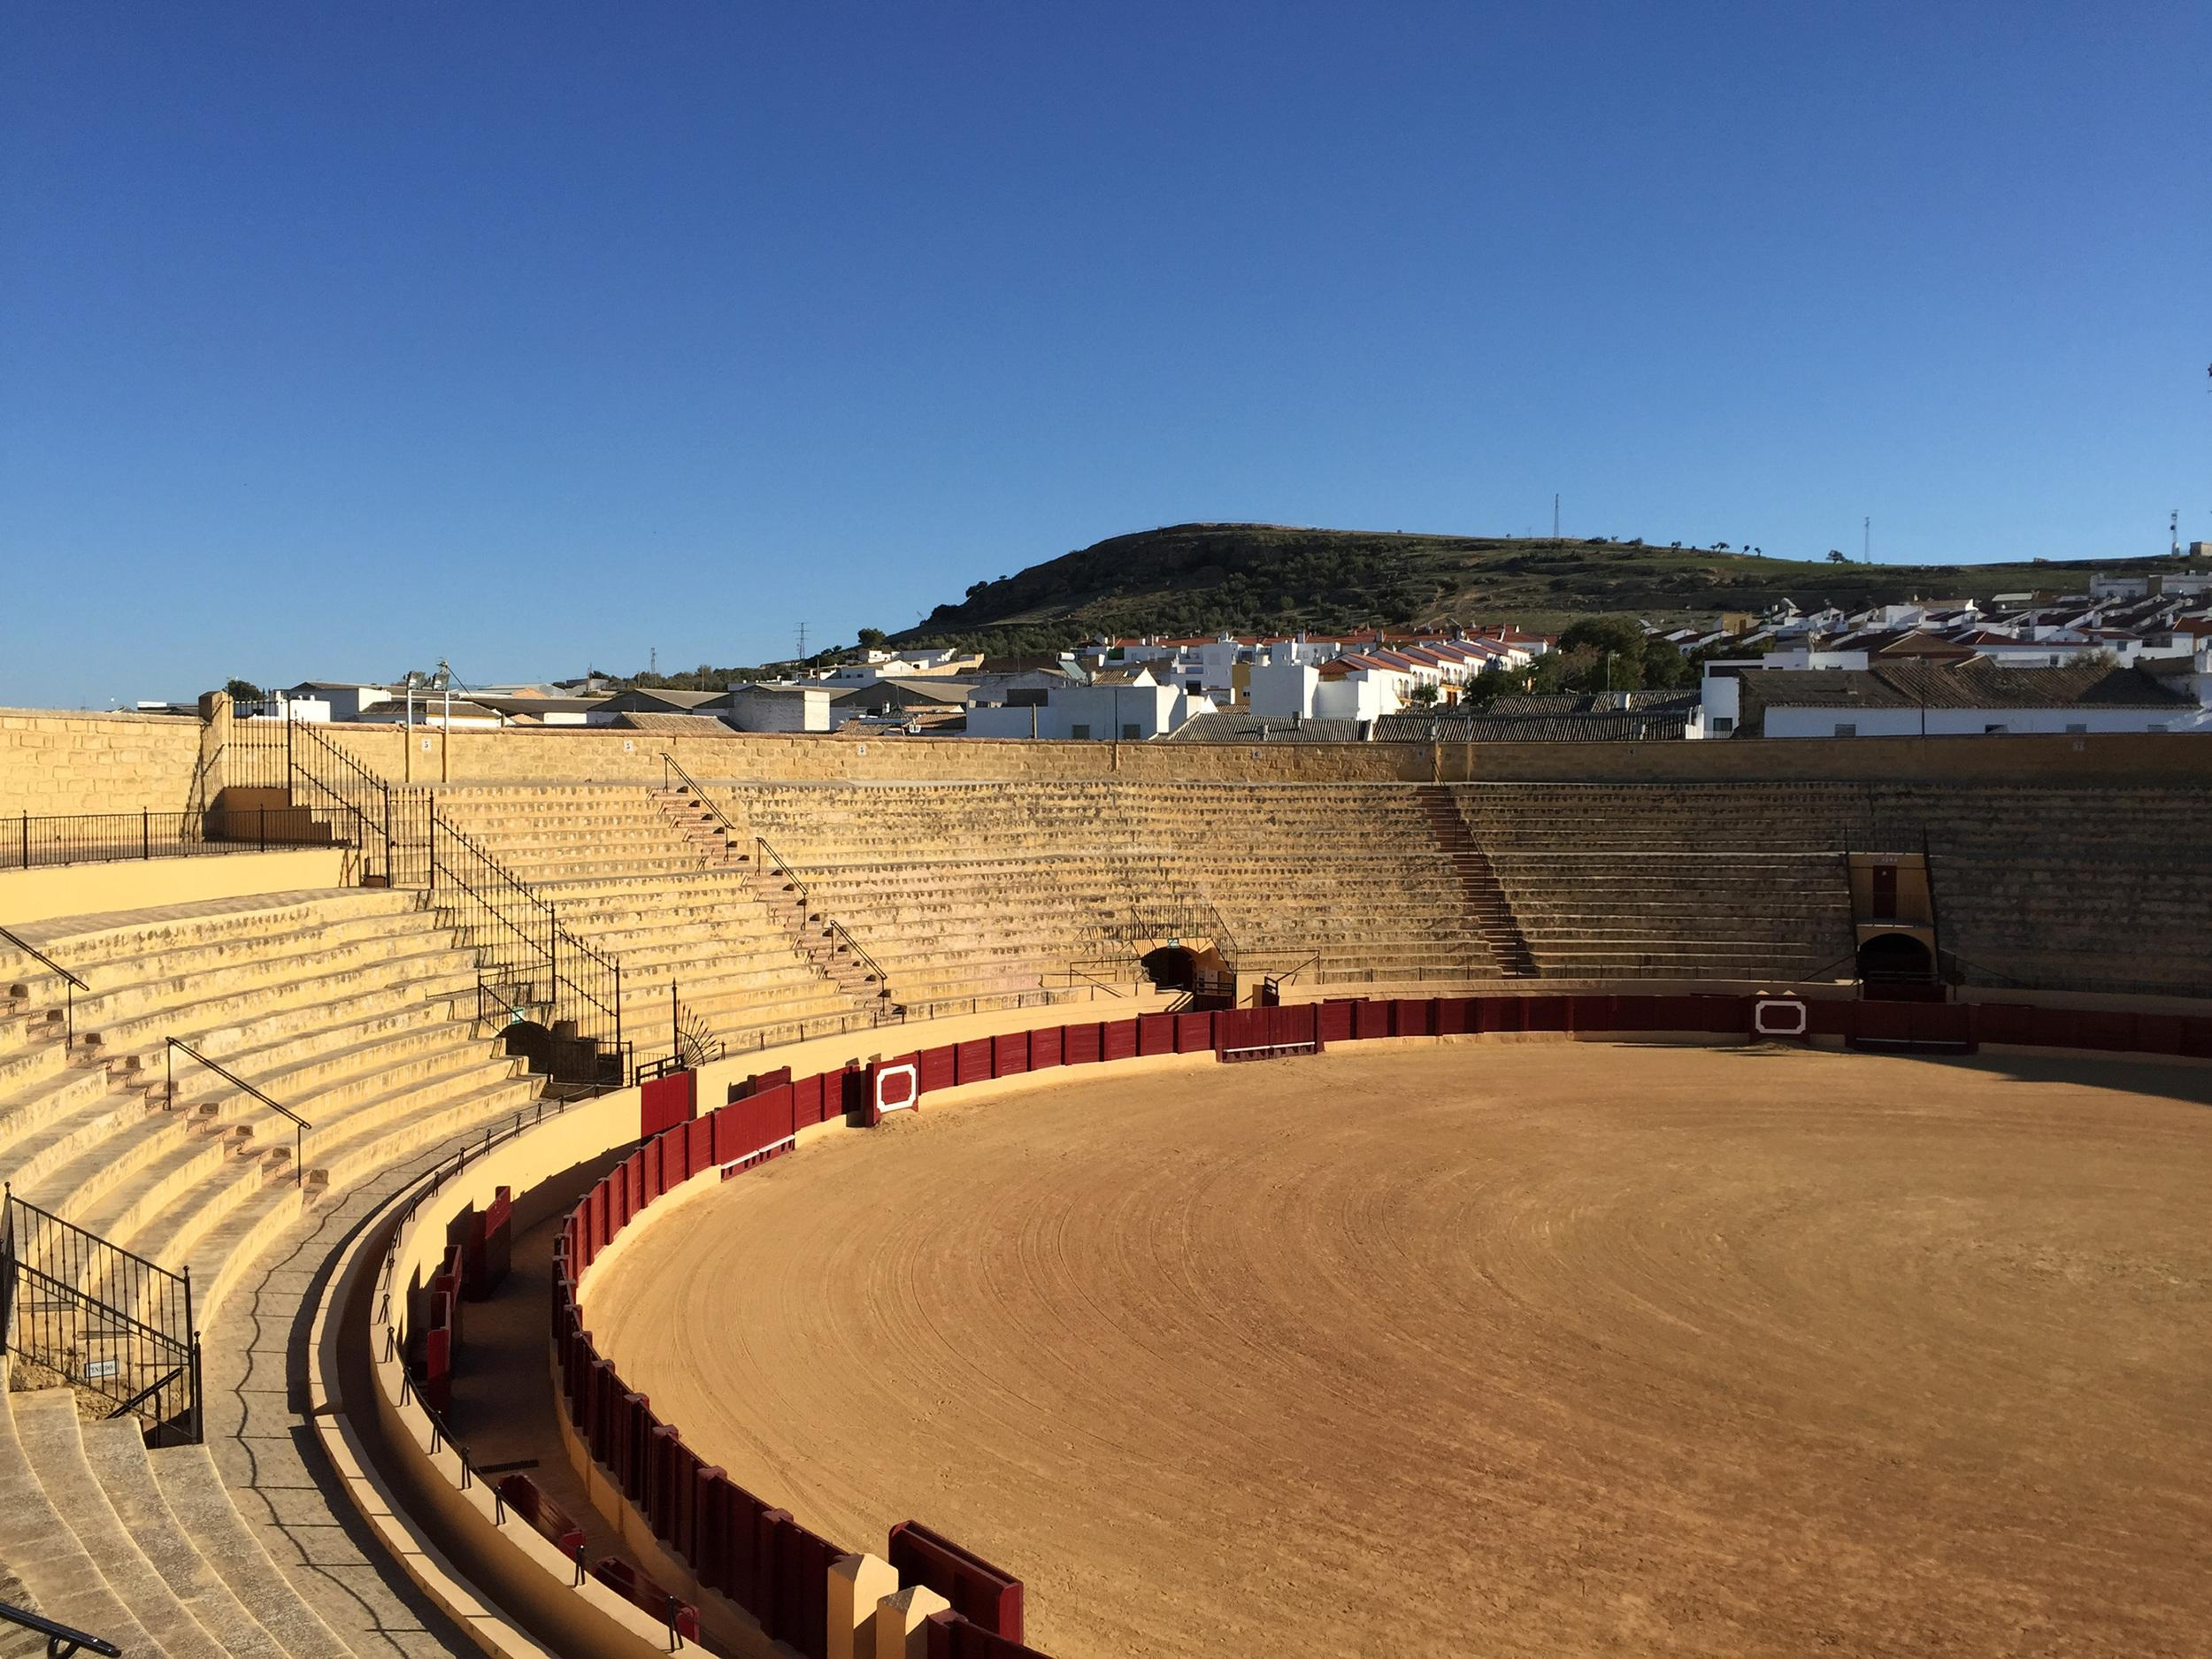 """<p><strong>GOT Location</strong>: The arena in Mereen</p>  <p><strong>Real life location</strong>: Bullring of Osuna, Spain</p>  <p>Visit the Bullring in Osuna and imagine what it would be like to be surrounded by your enemies just like Daenerys.</p>  <p><strong><a href=""""https://fave.co/2GpGqJU"""">Book your trip.</a></strong></p>  <p></p>"""